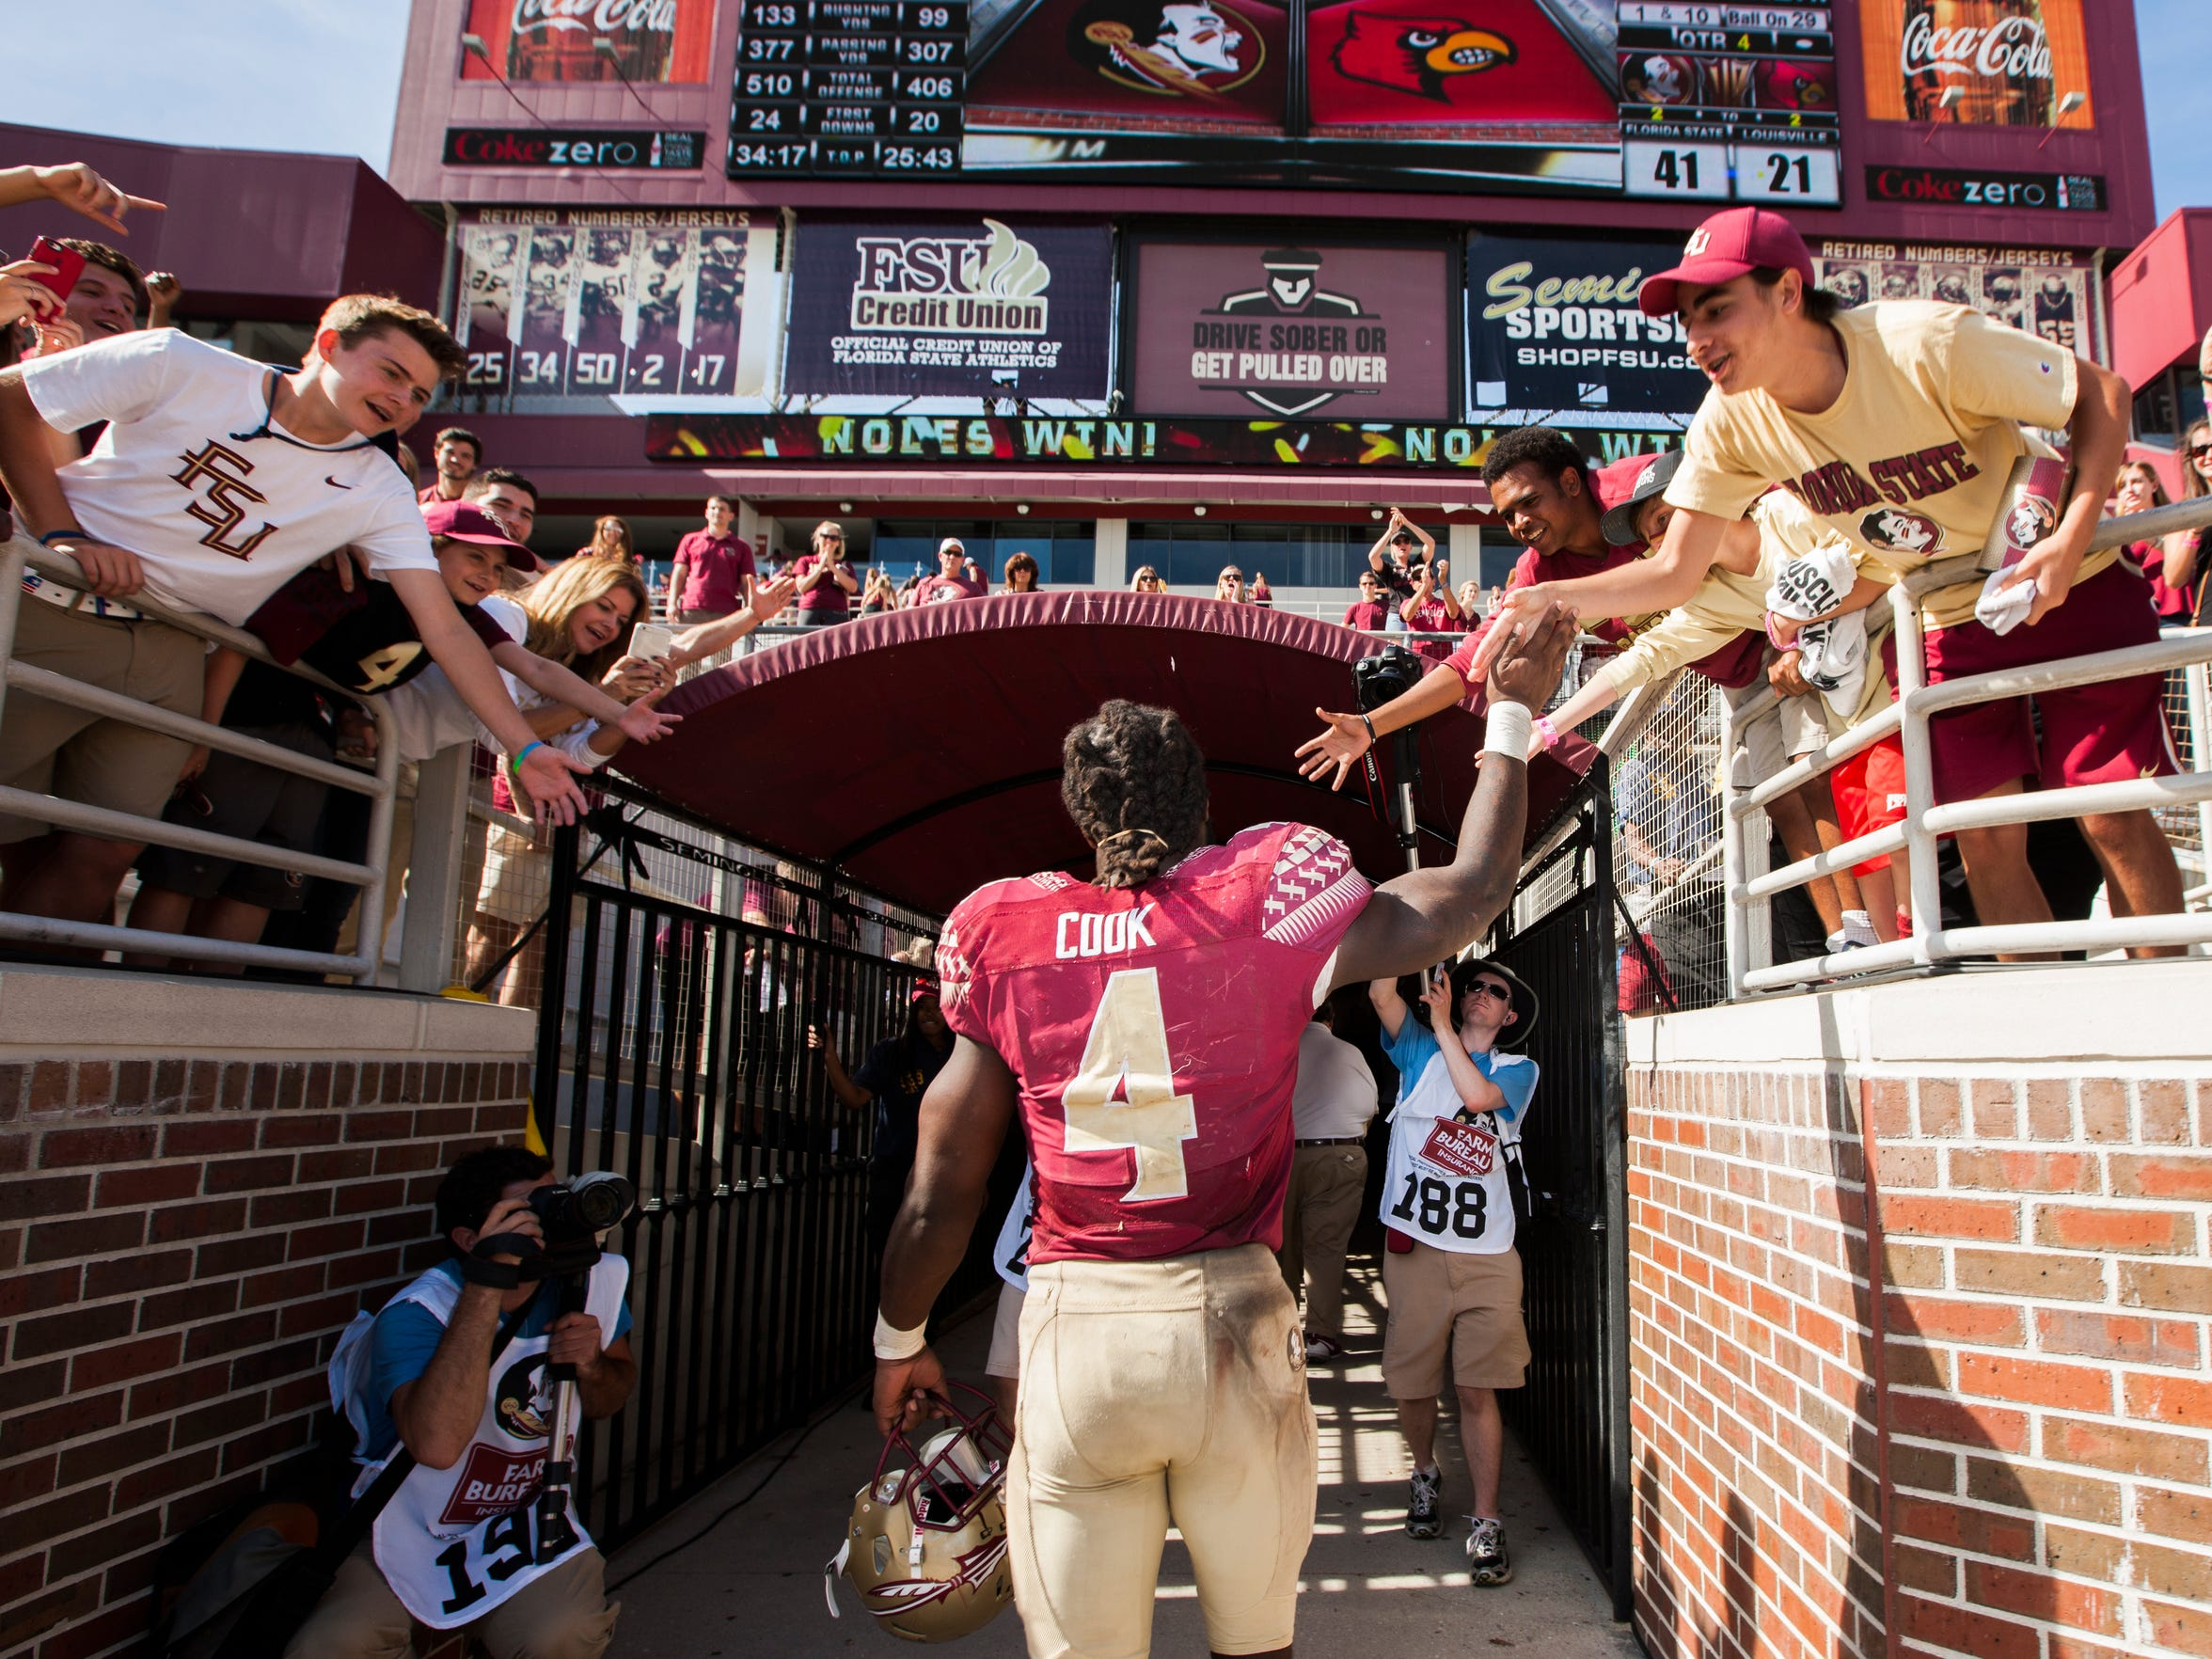 If FSU makes a run to the national title, Cook will be a key ingredient to the team's success.